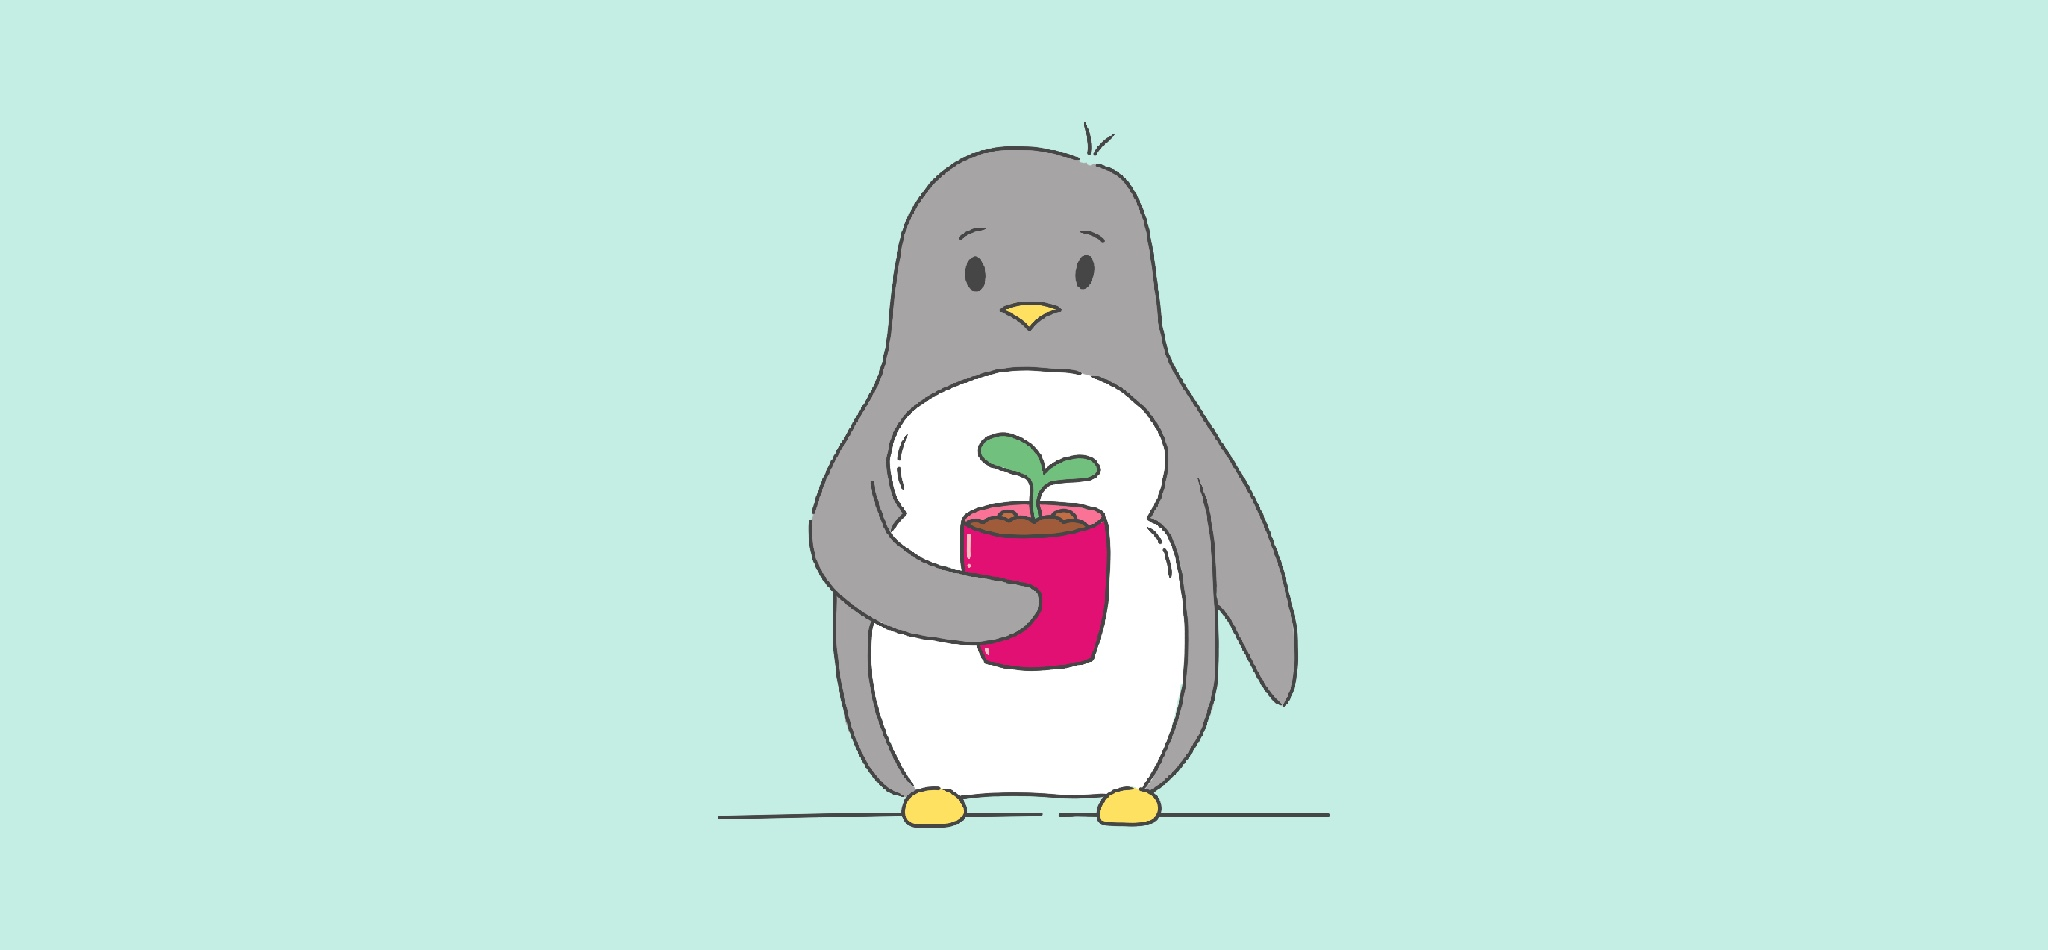 Illustration of penguin holding a small plant in a pink plant pot, against a mint green background.